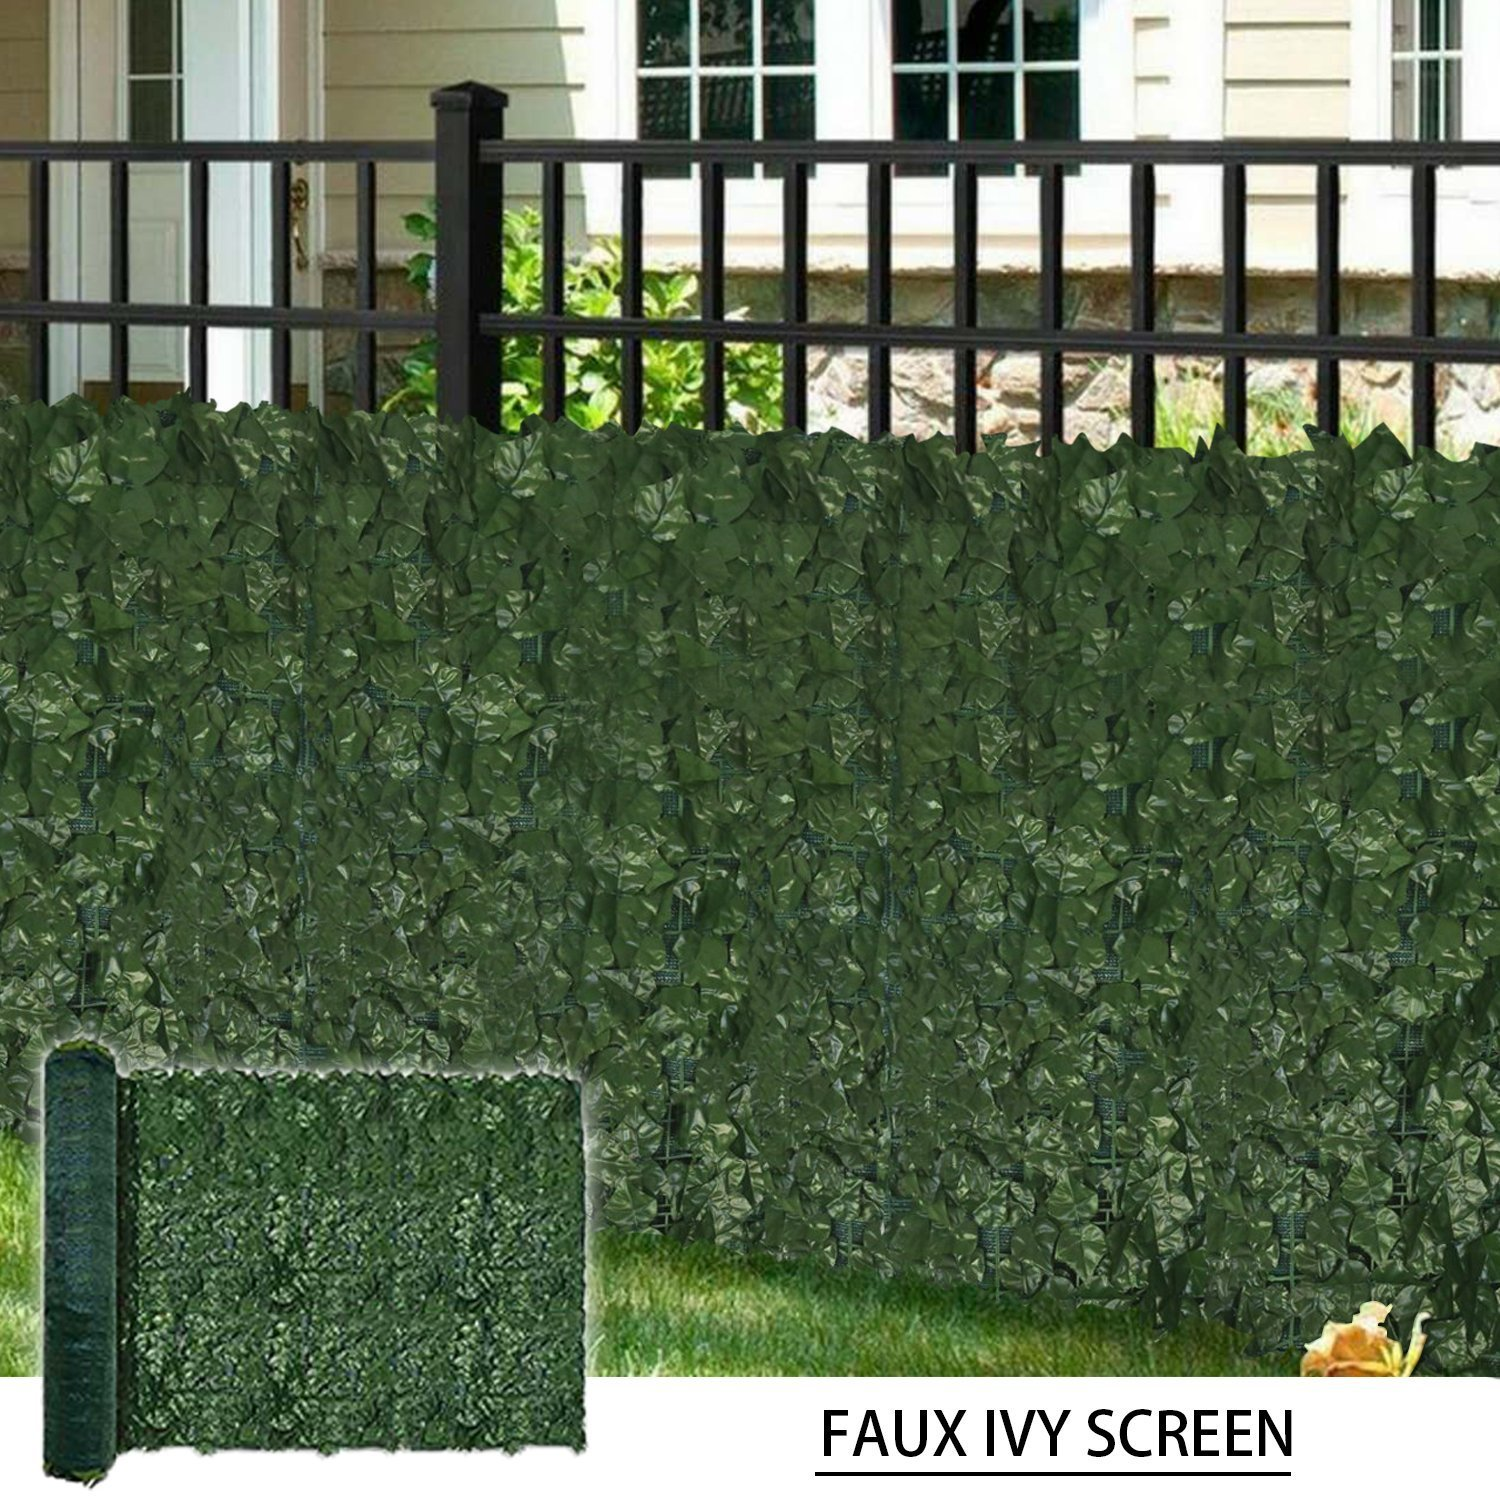 Coarbor 58''X156'' Artificial Faux Ivy Leaf Privacy Fence Screen with Mesh Backing Panels Decorative Perfect for Back Yard Deck Patio Provide More Outdoor Privacy